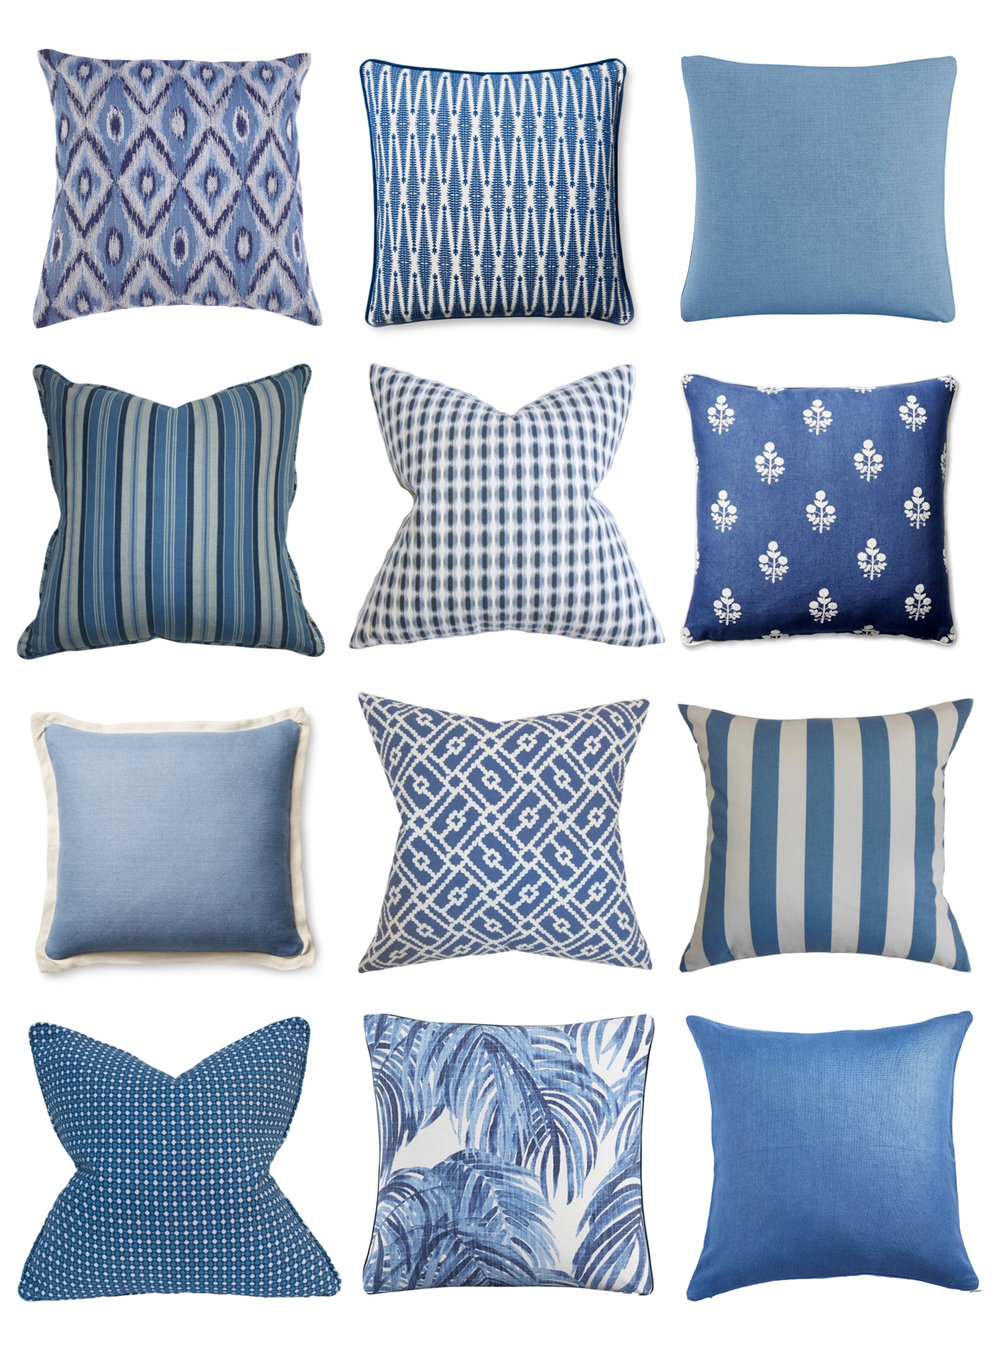 Twelve blue pillows to freshen your home for summer!